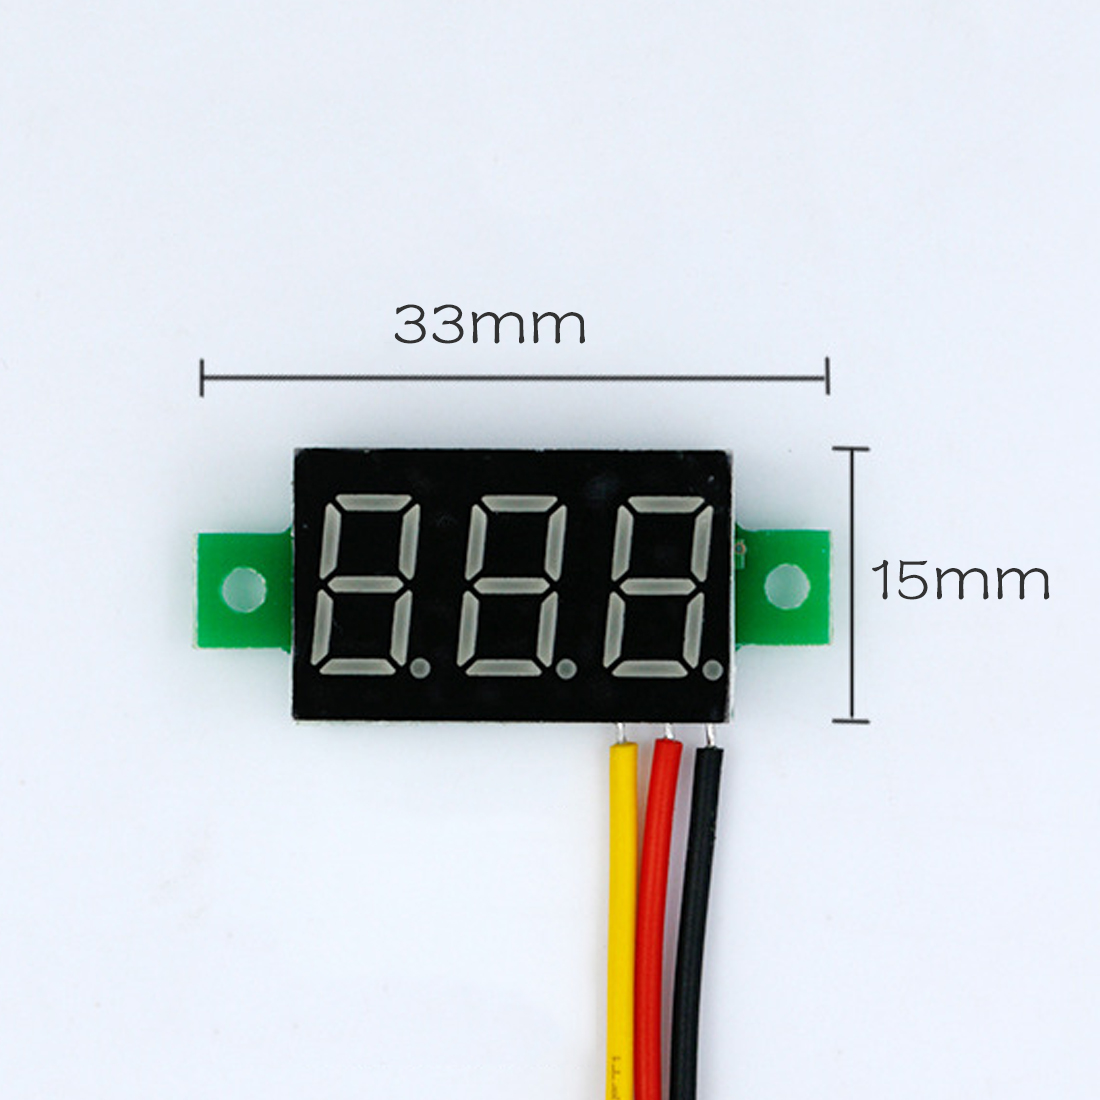 DC 0-100v 3 Bits 0.36 Inch Digital Red LED Display Panel Voltage Meter Voltmeter Tester Hot Mini